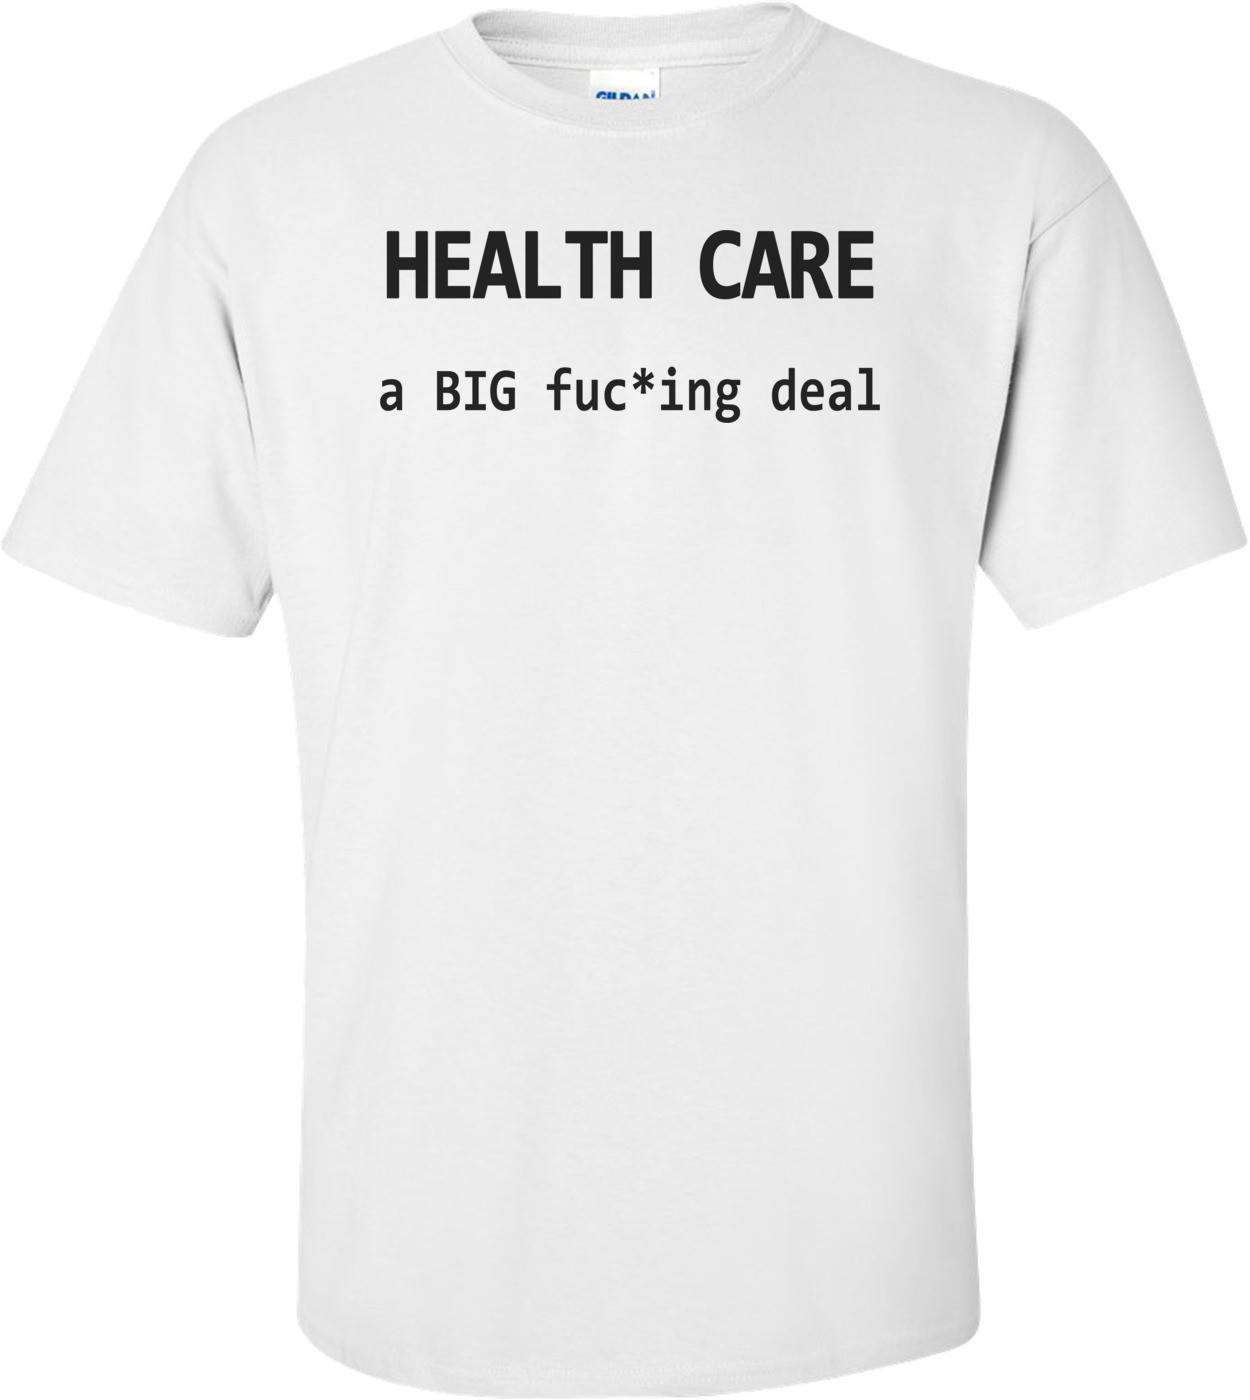 Health Care A Big Fuc*ing Deal T-shirt